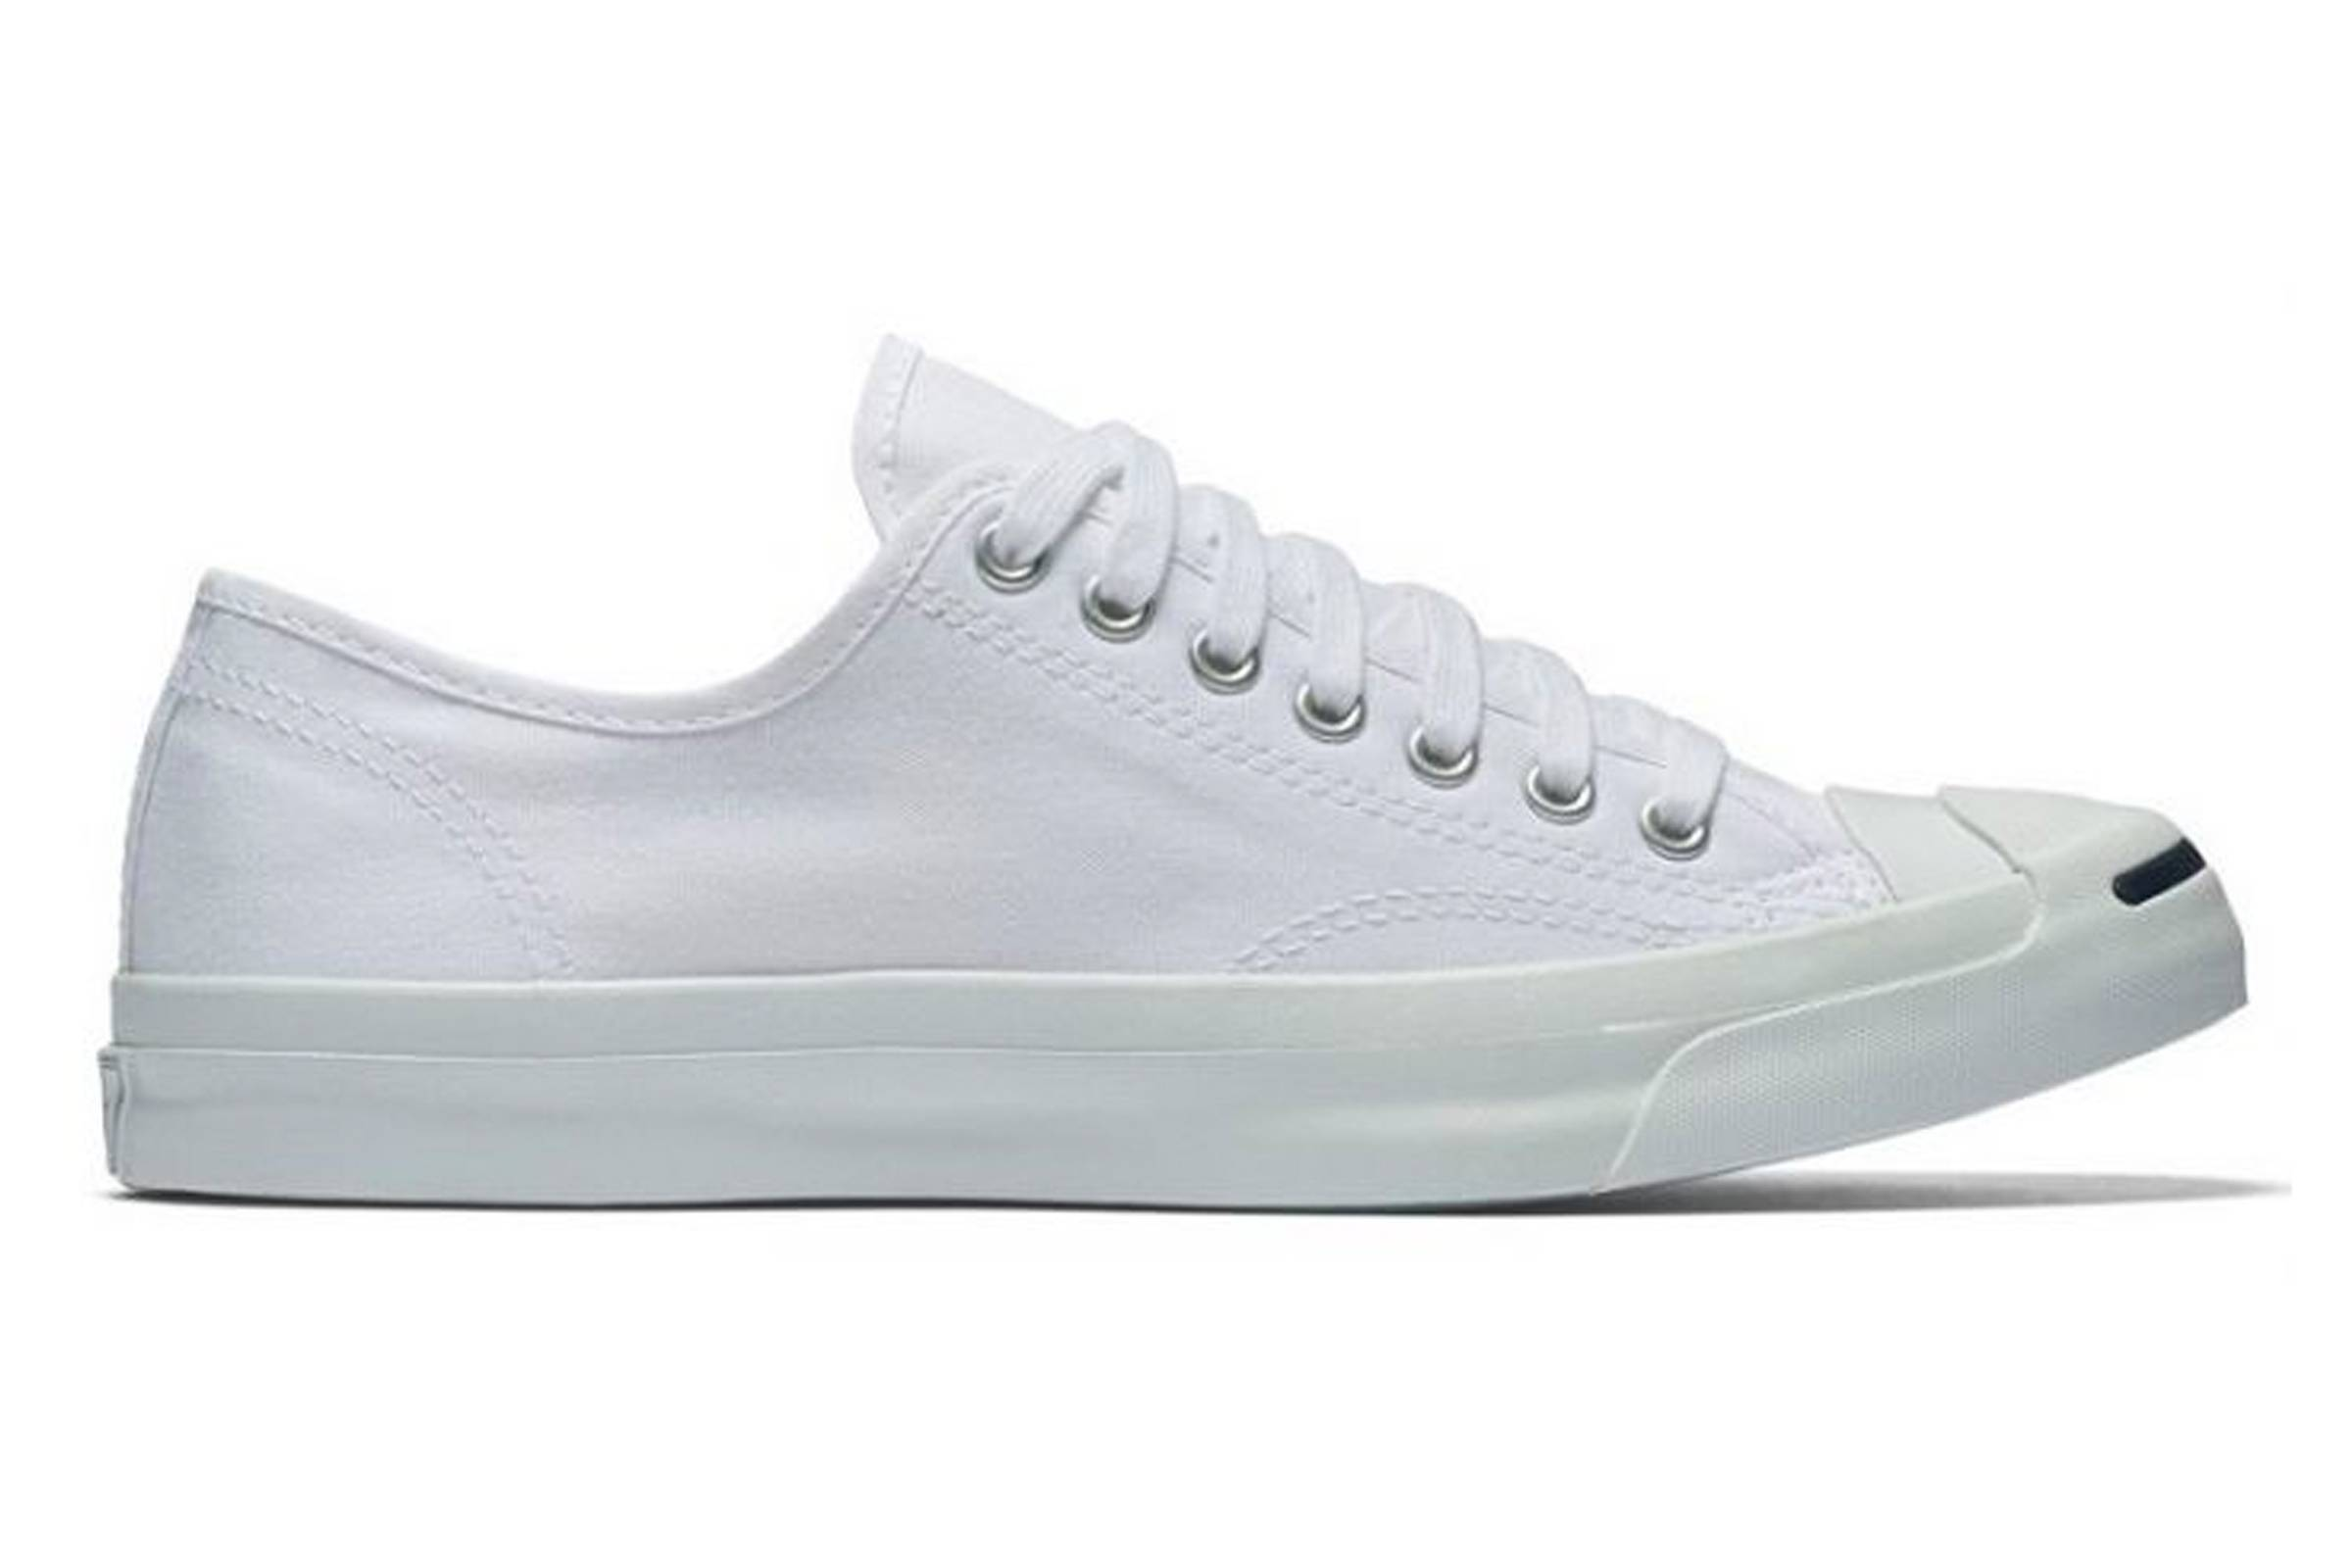 Converse Jack Purcell Low